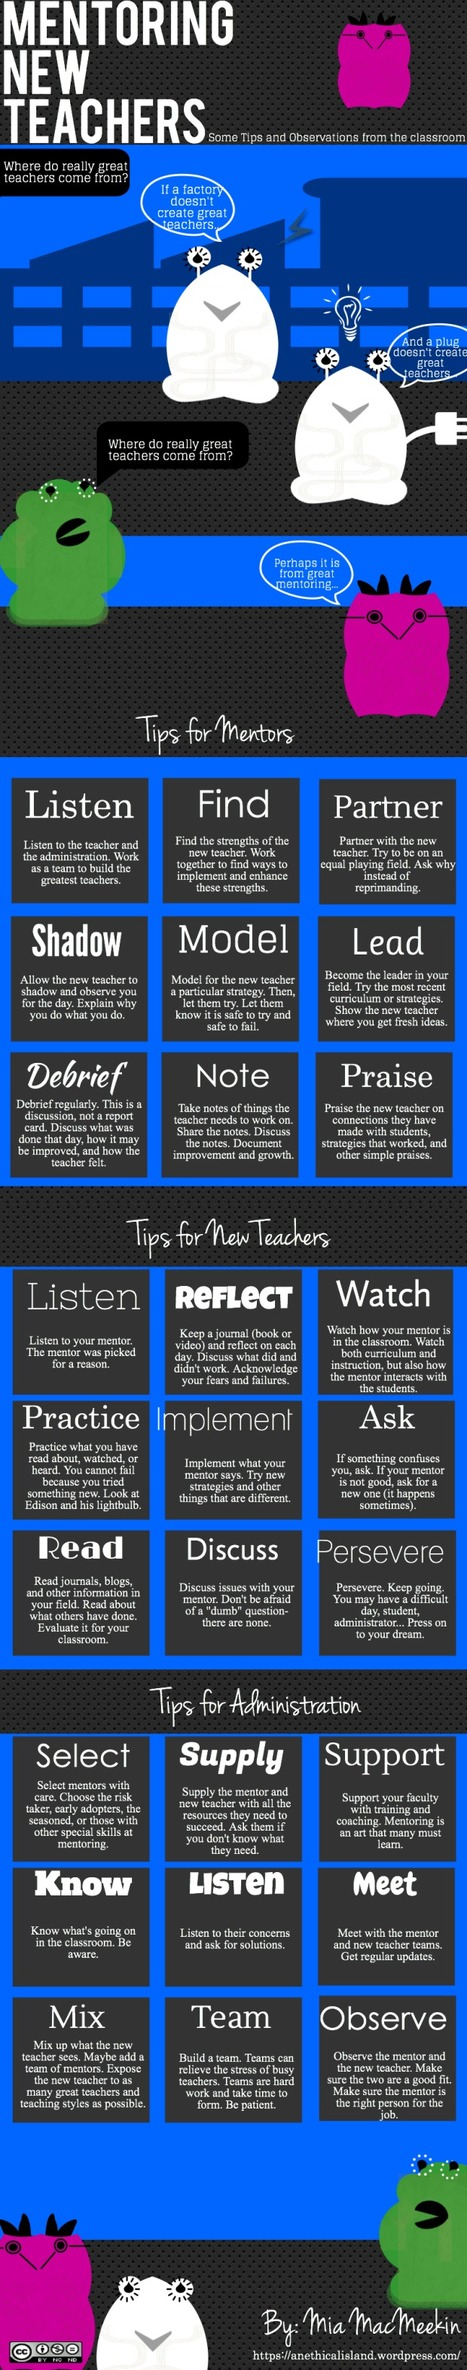 27 Tips For Mentoring New Teachers [Infographic] | Leadership ideas | Scoop.it